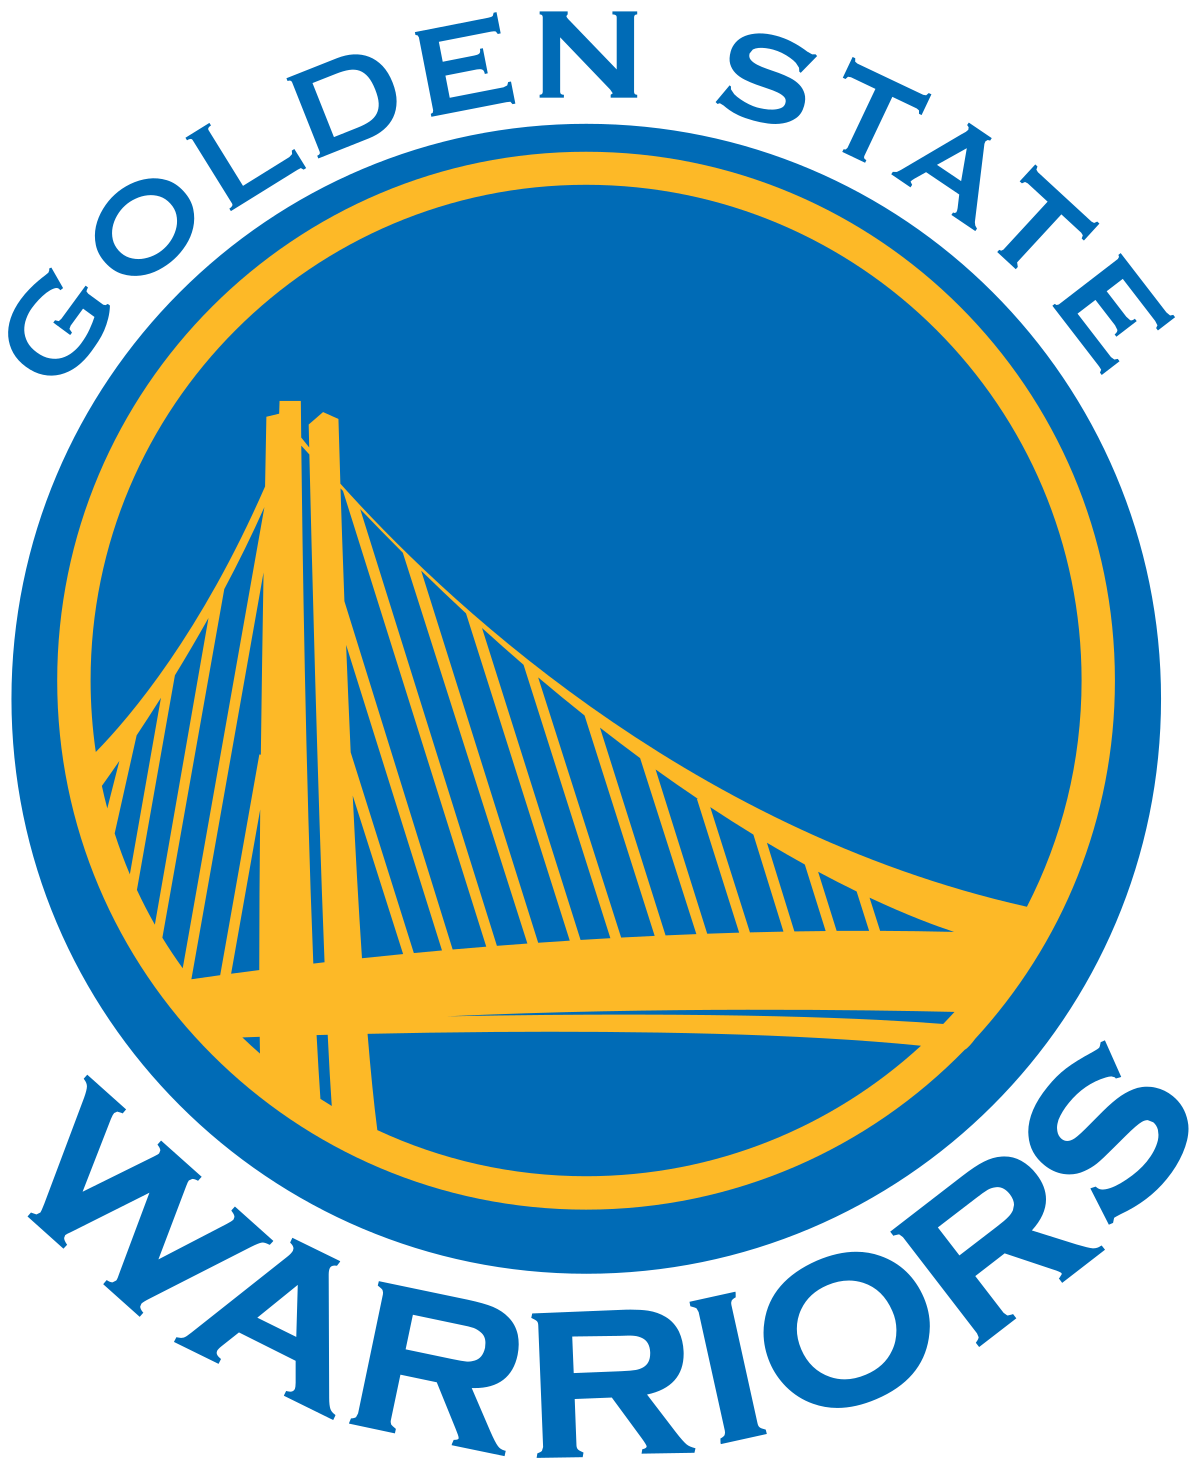 2. 金州勇士 Golden State Warriors